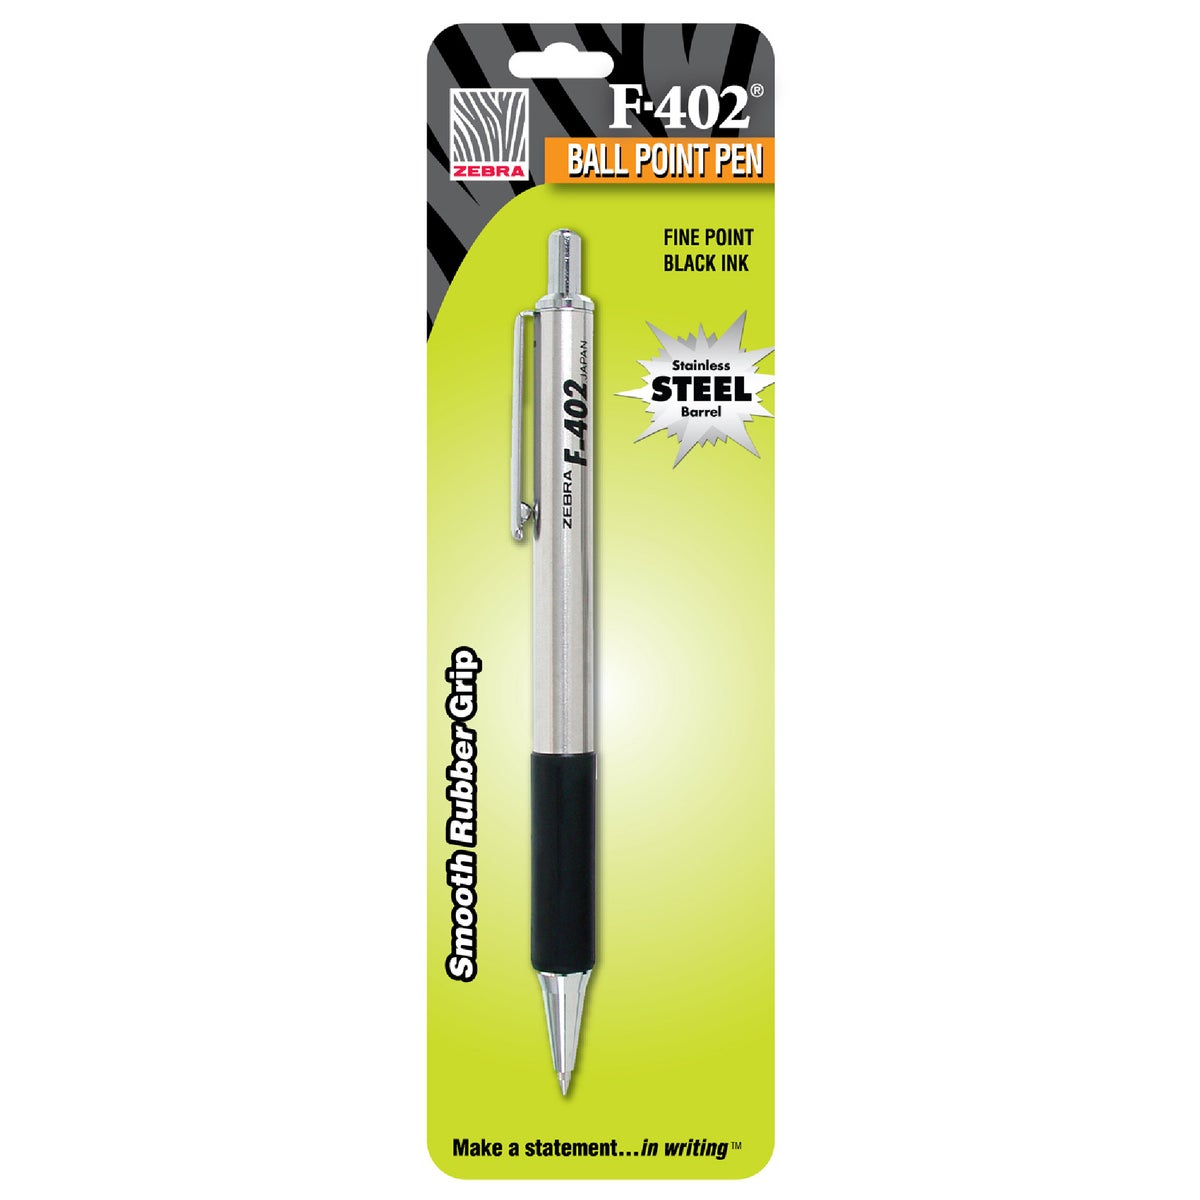 BLK STAINLESS STEEL PEN - 29211 by Zebra Pen Corp